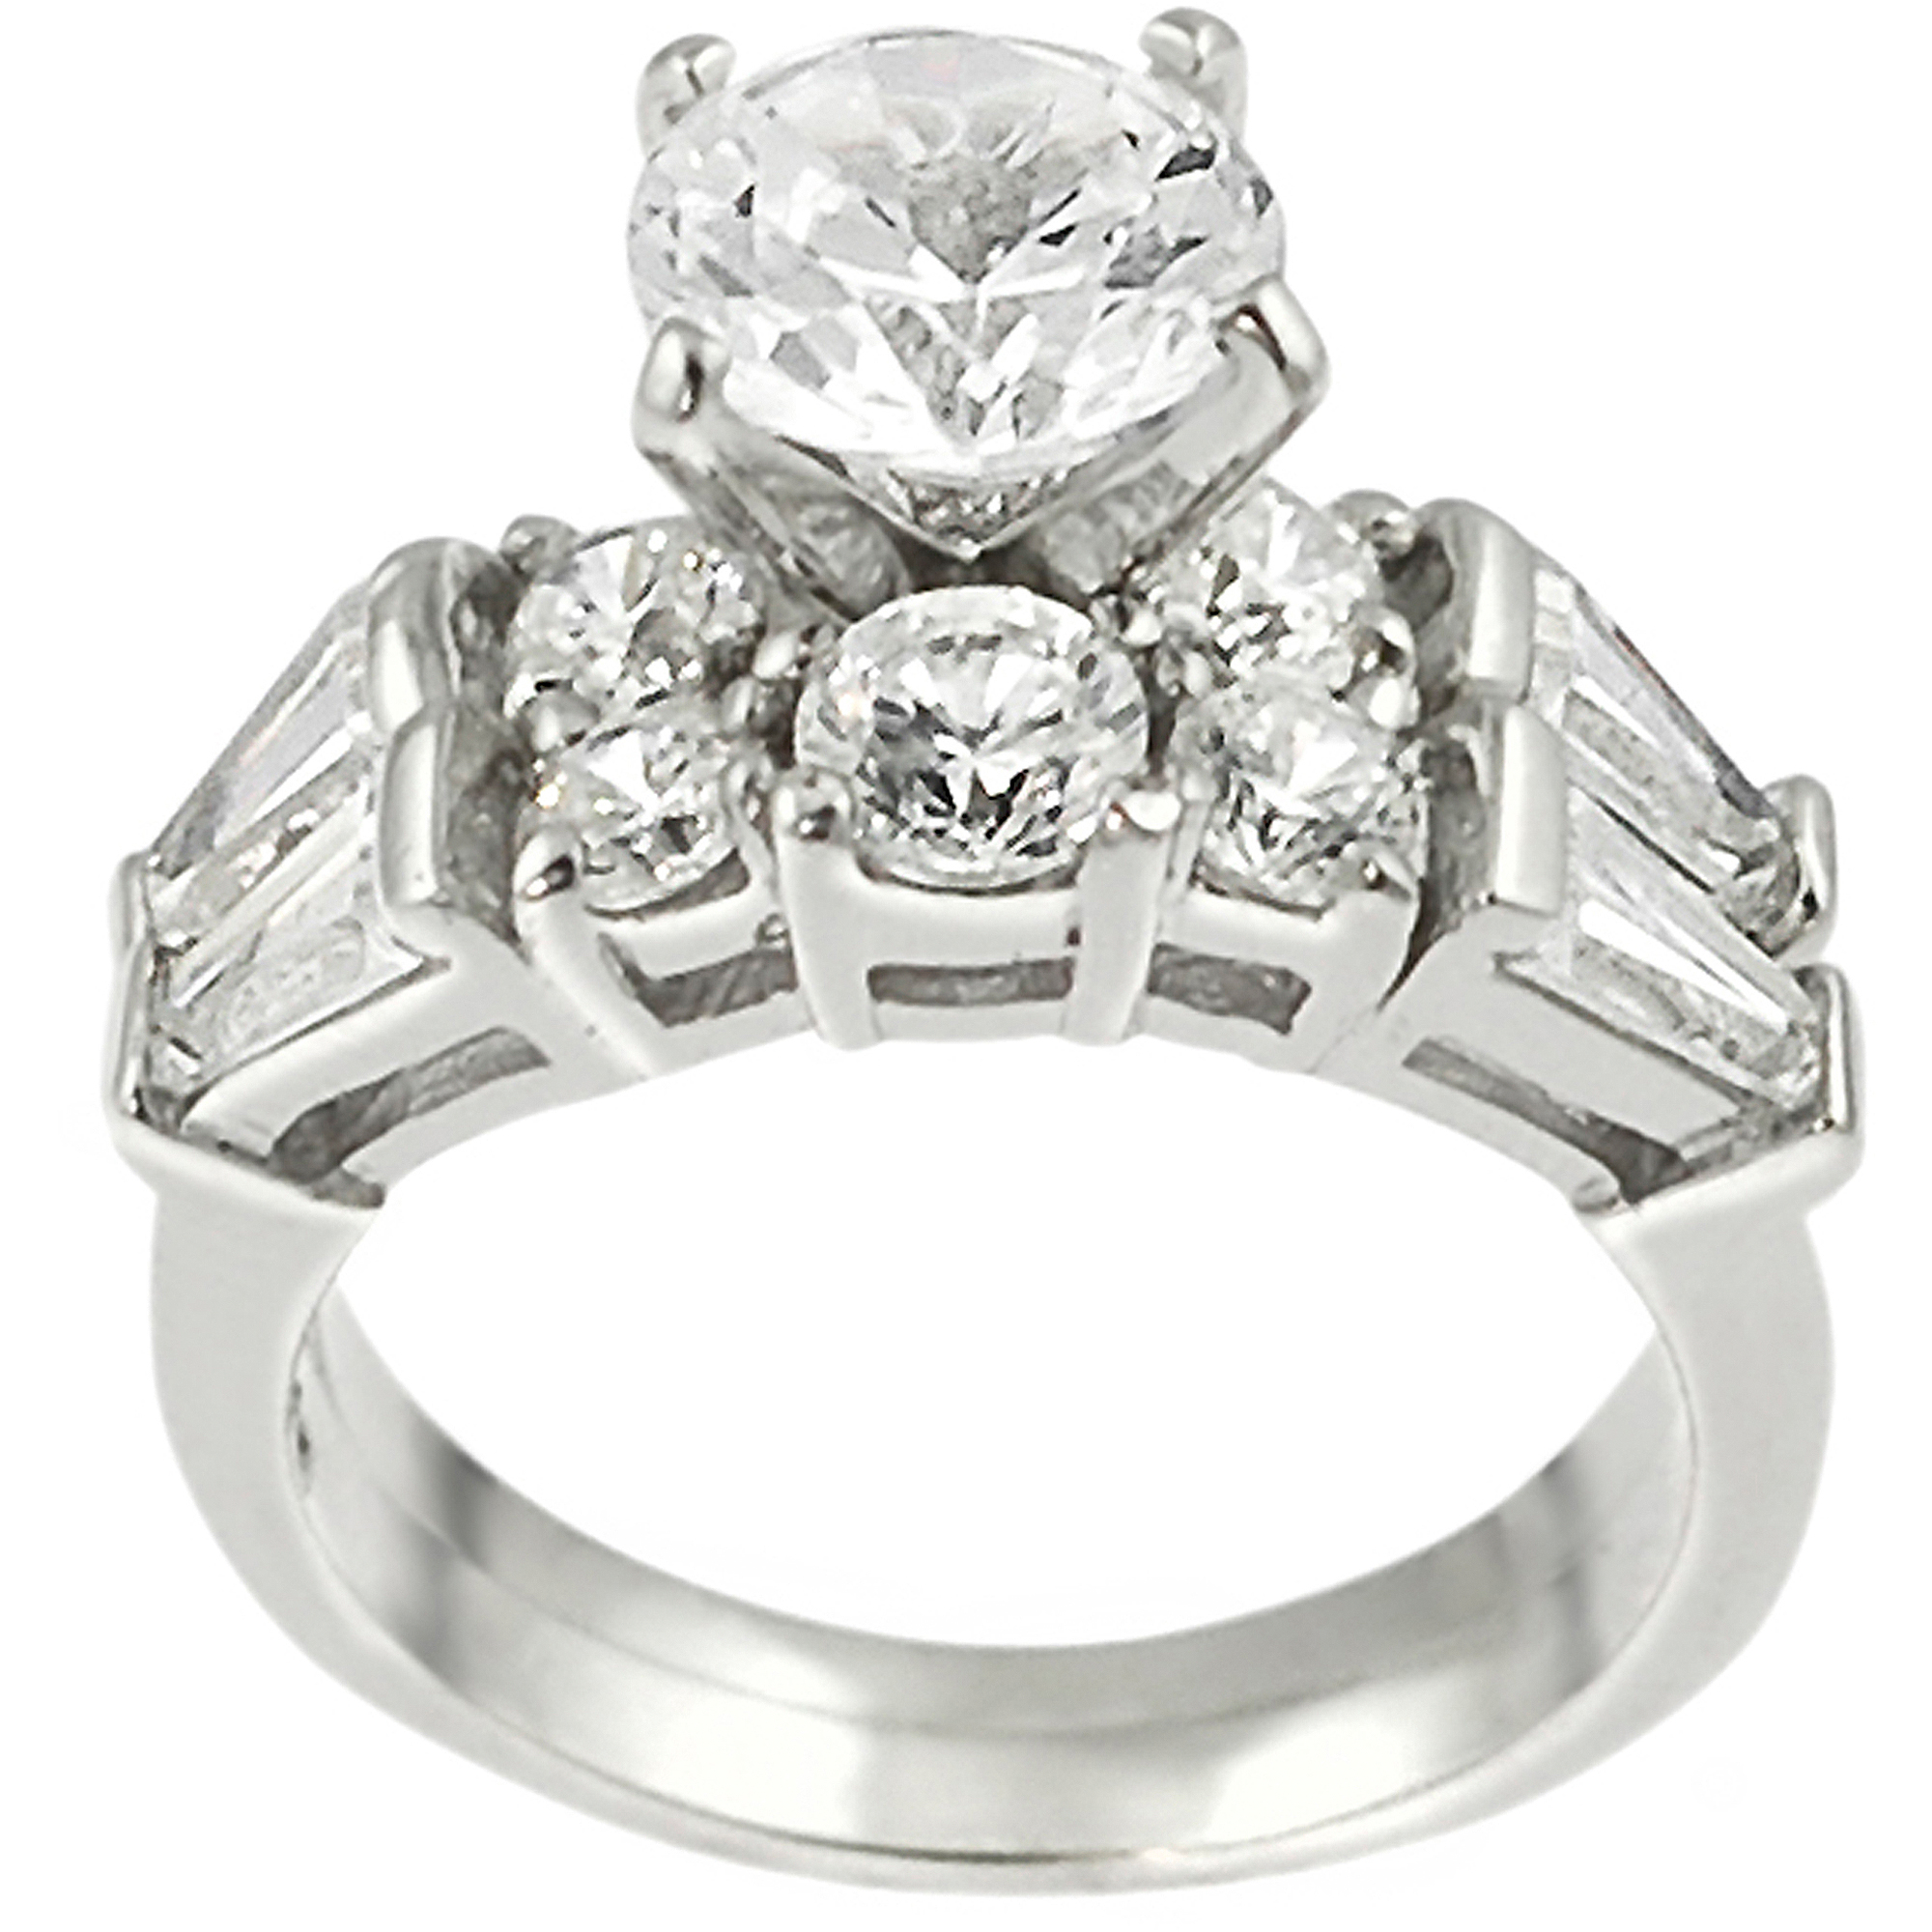 Alexandria Collection Sterling Silver Baguette Cubic Zirconia Bridal Ring Set